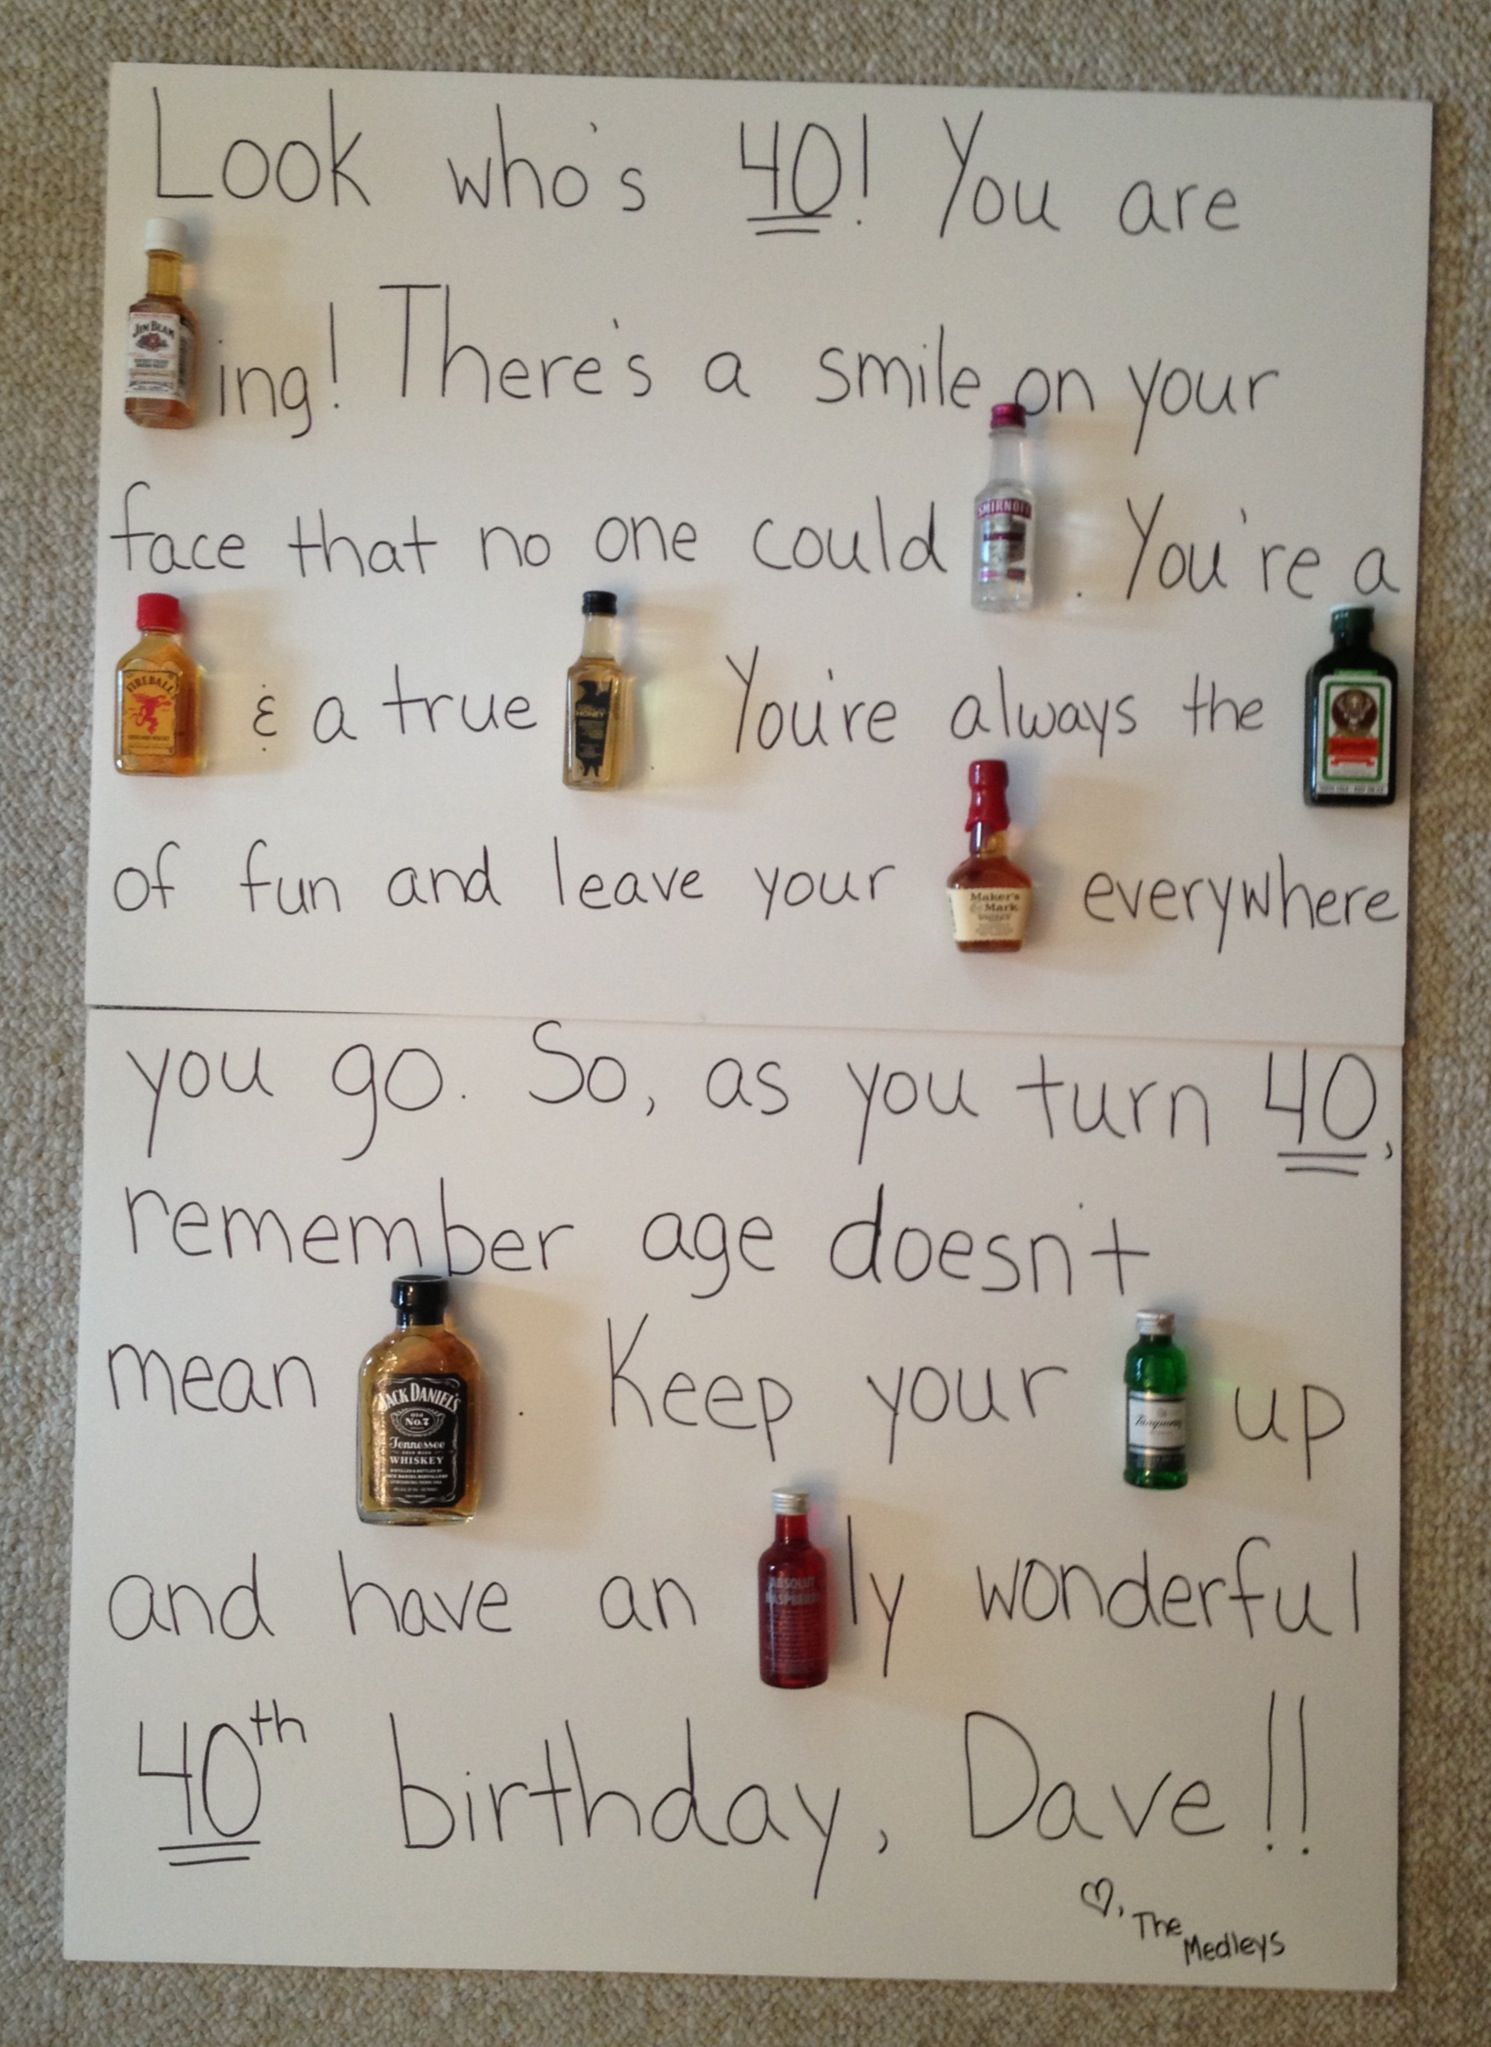 40th birthday liquor poem look who 39 s 40 you are beam for Christmas gift ideas 50 year old man